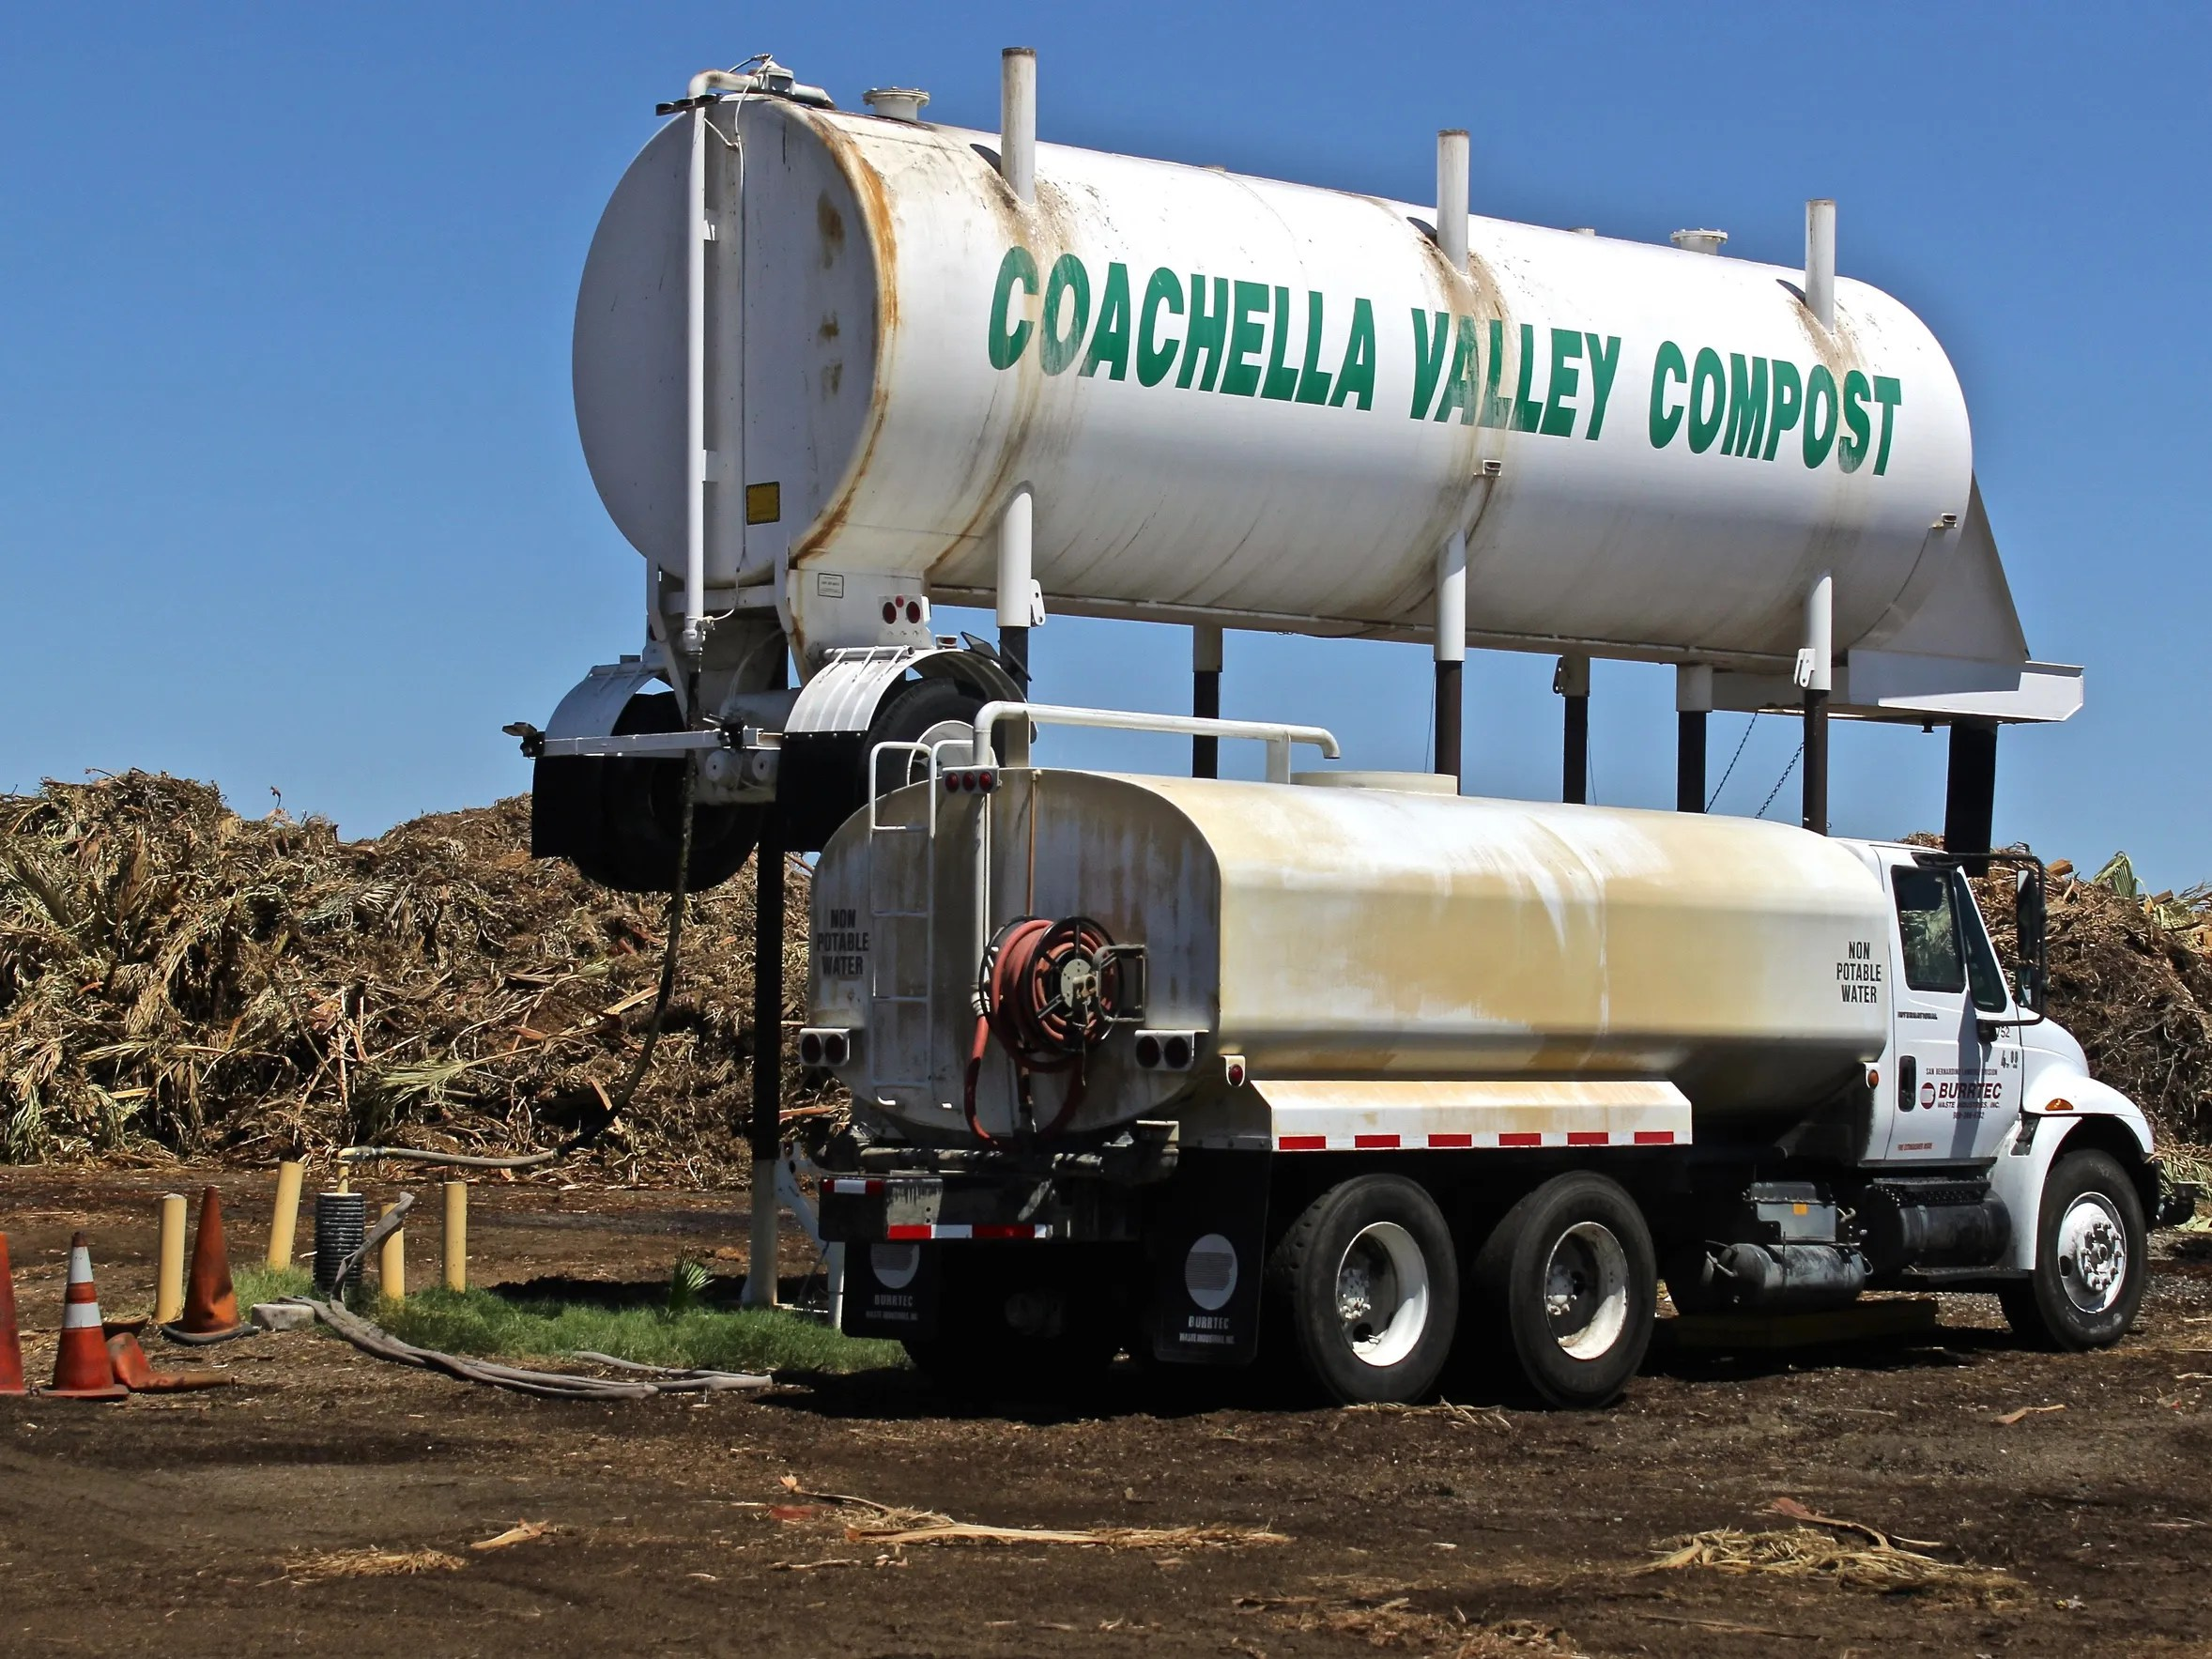 4- Coachella Valley Compost